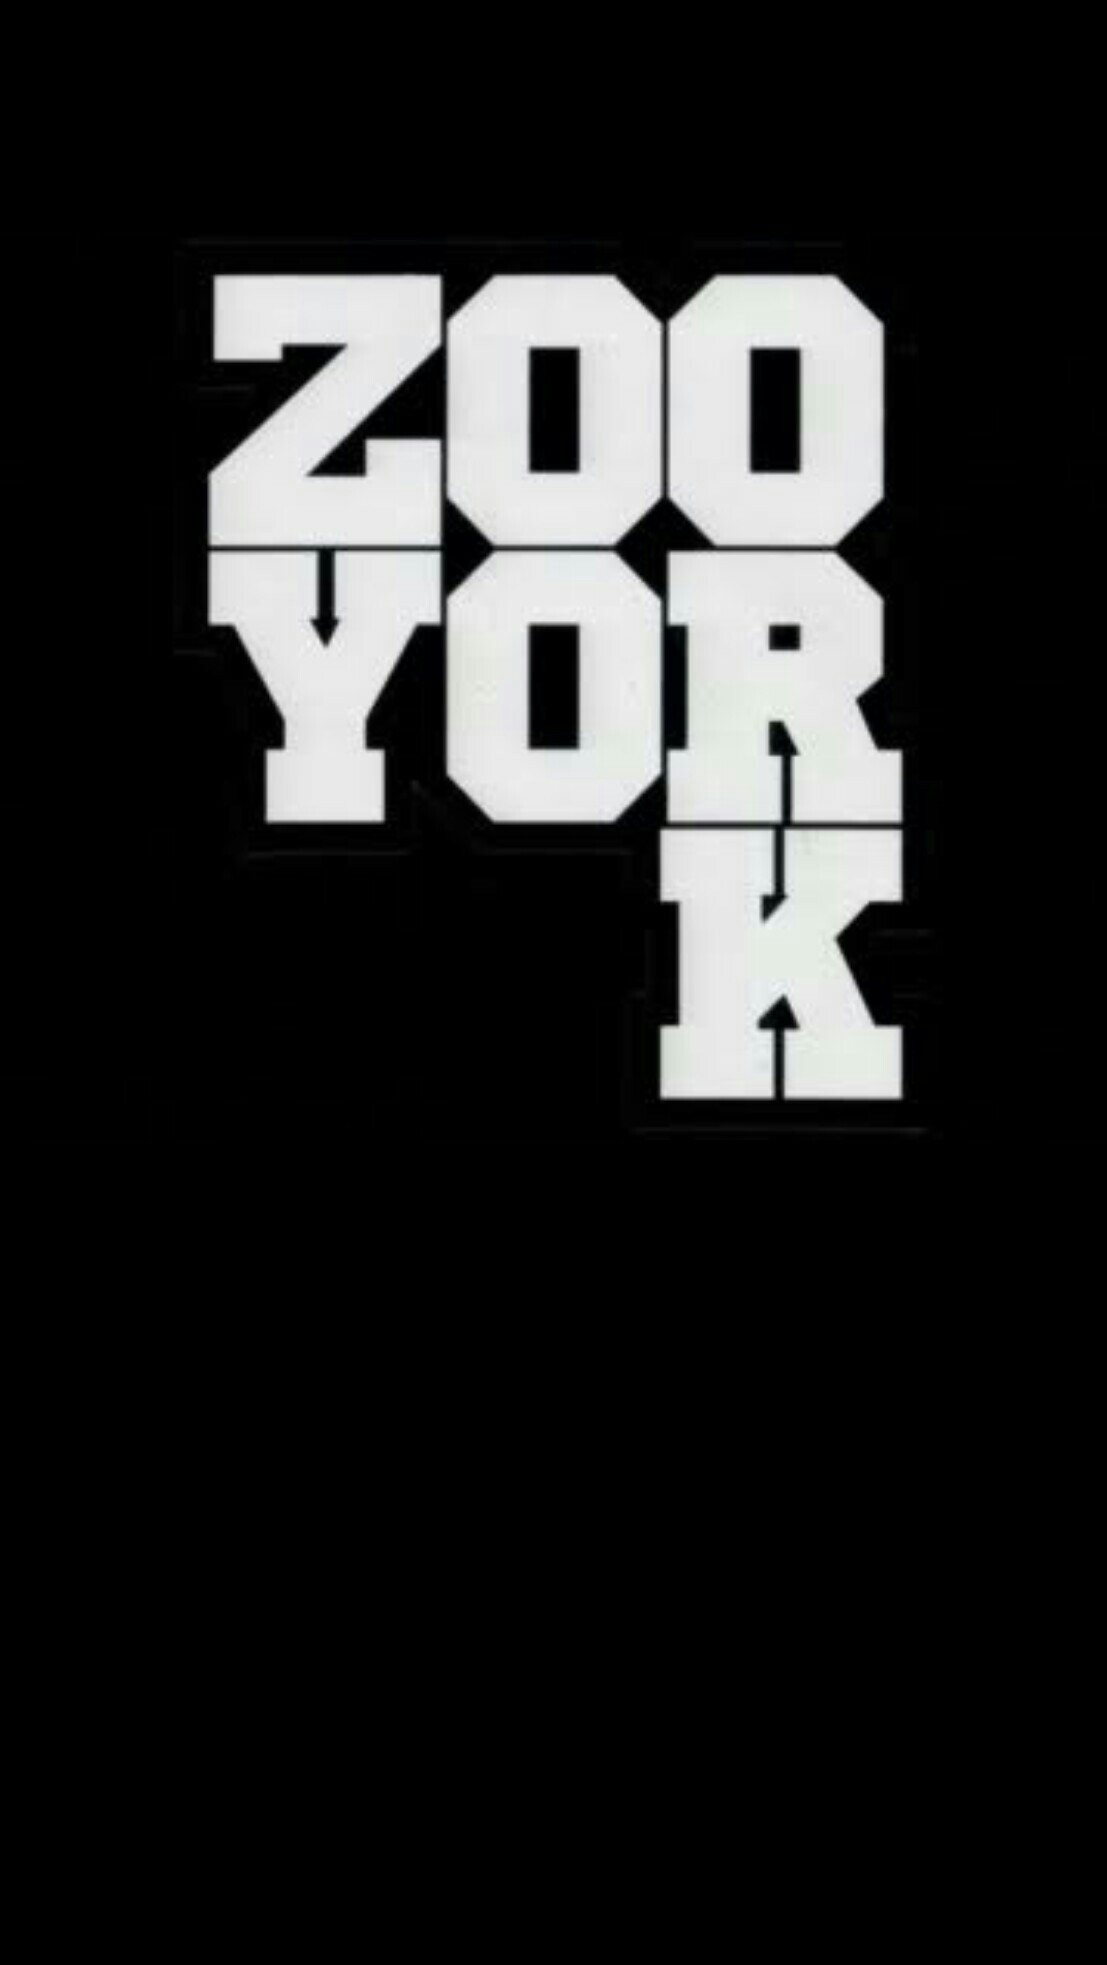 1107x1965 #zoo york #black #wallpaper #android #iphone